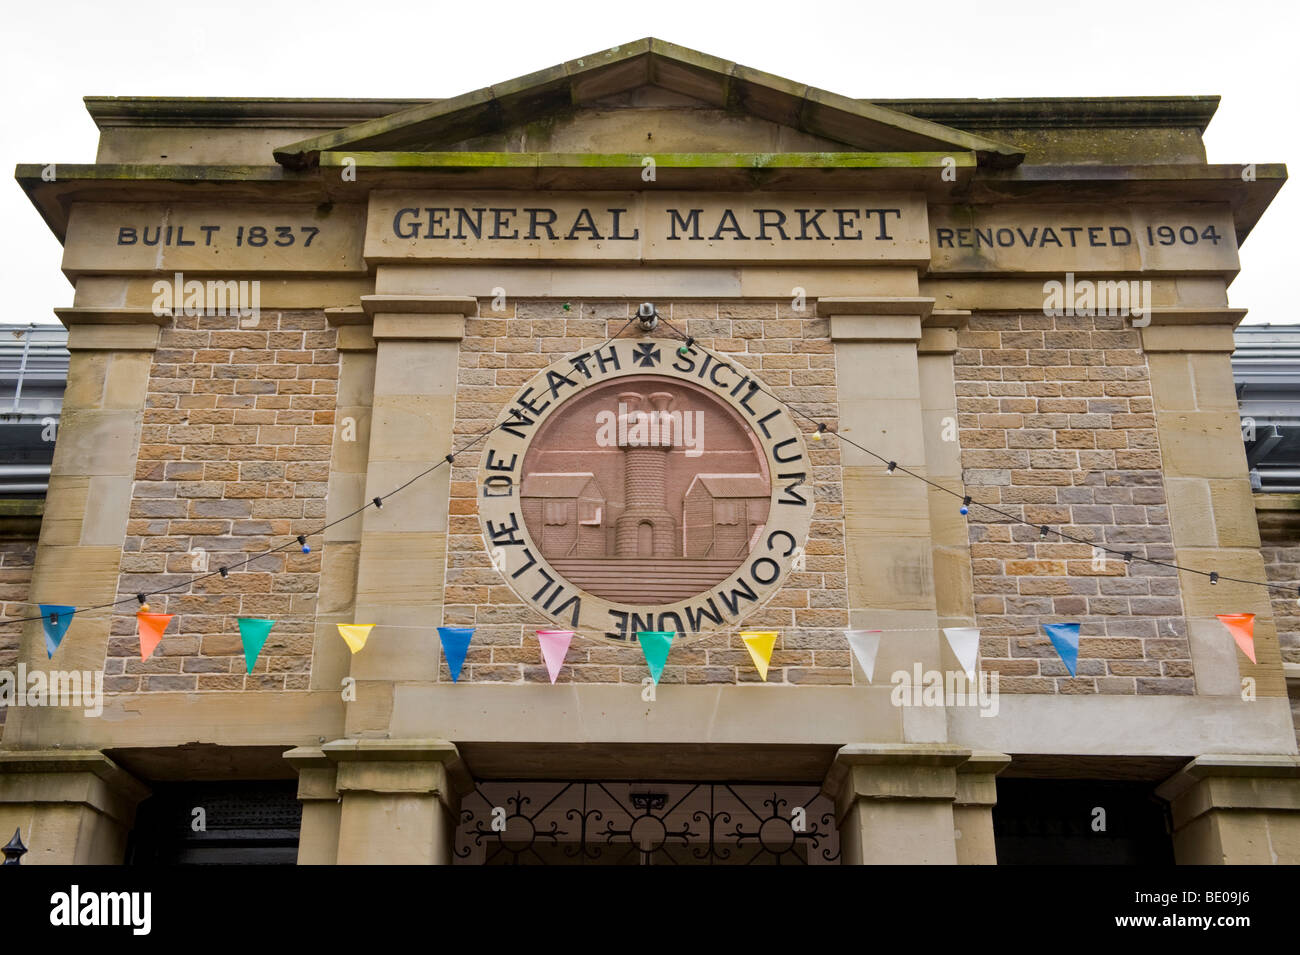 Exterior of Neath General Market built 1837 renovated 1904 at Neath South Wales UK - Stock Image